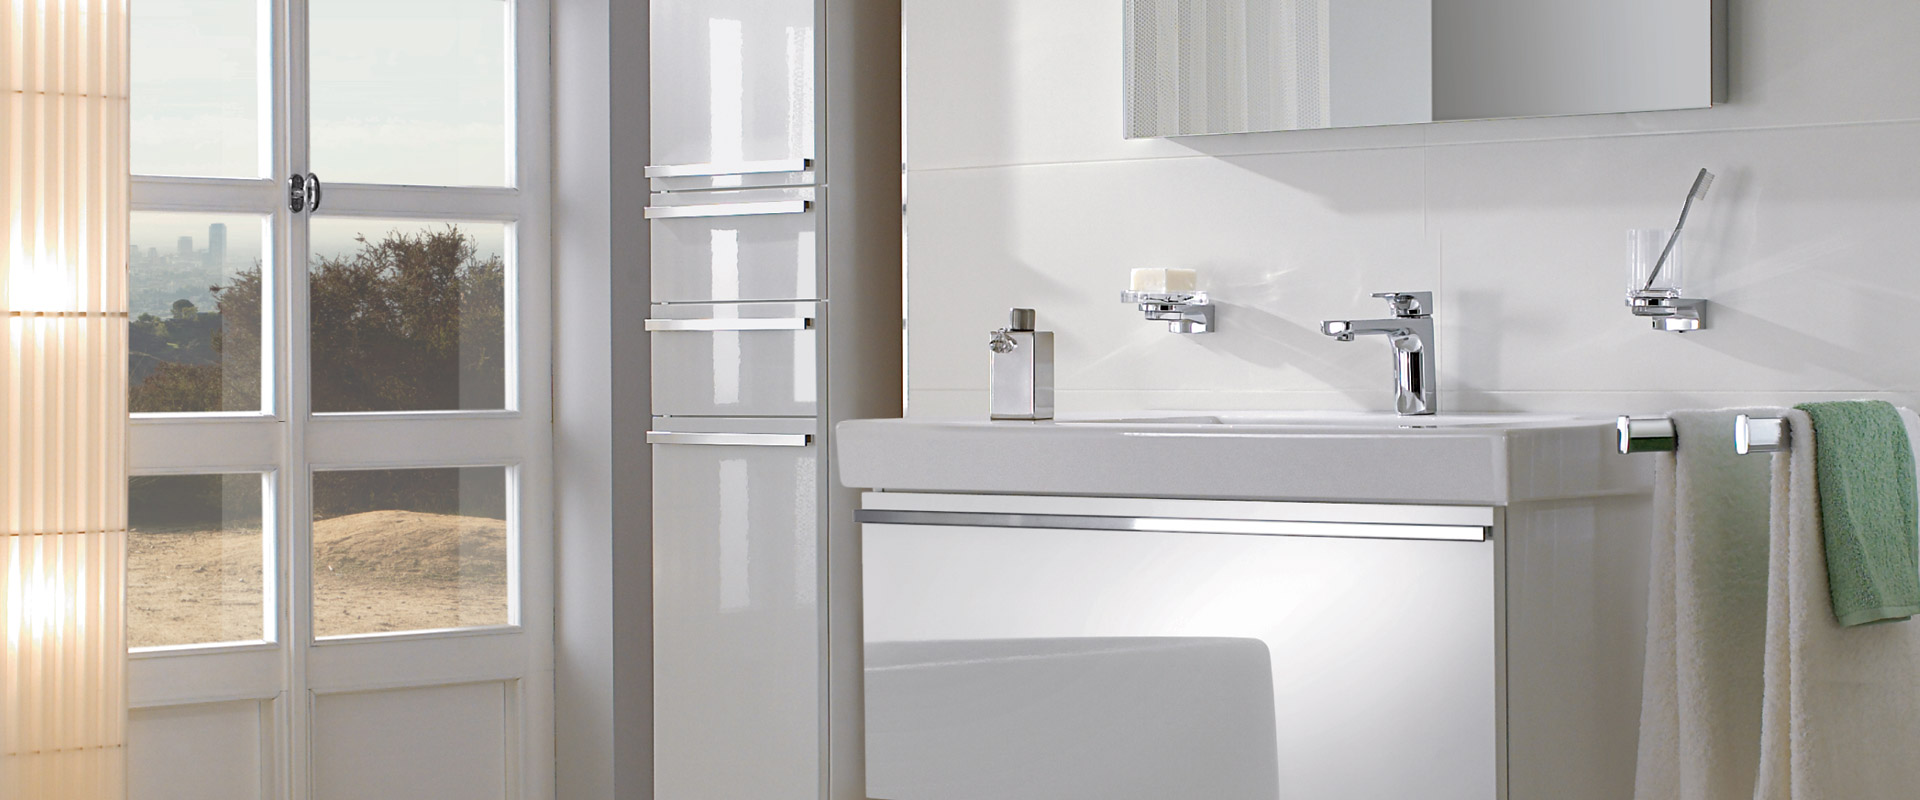 central line frn - Villeroy And Boch Bathroom Cabinets